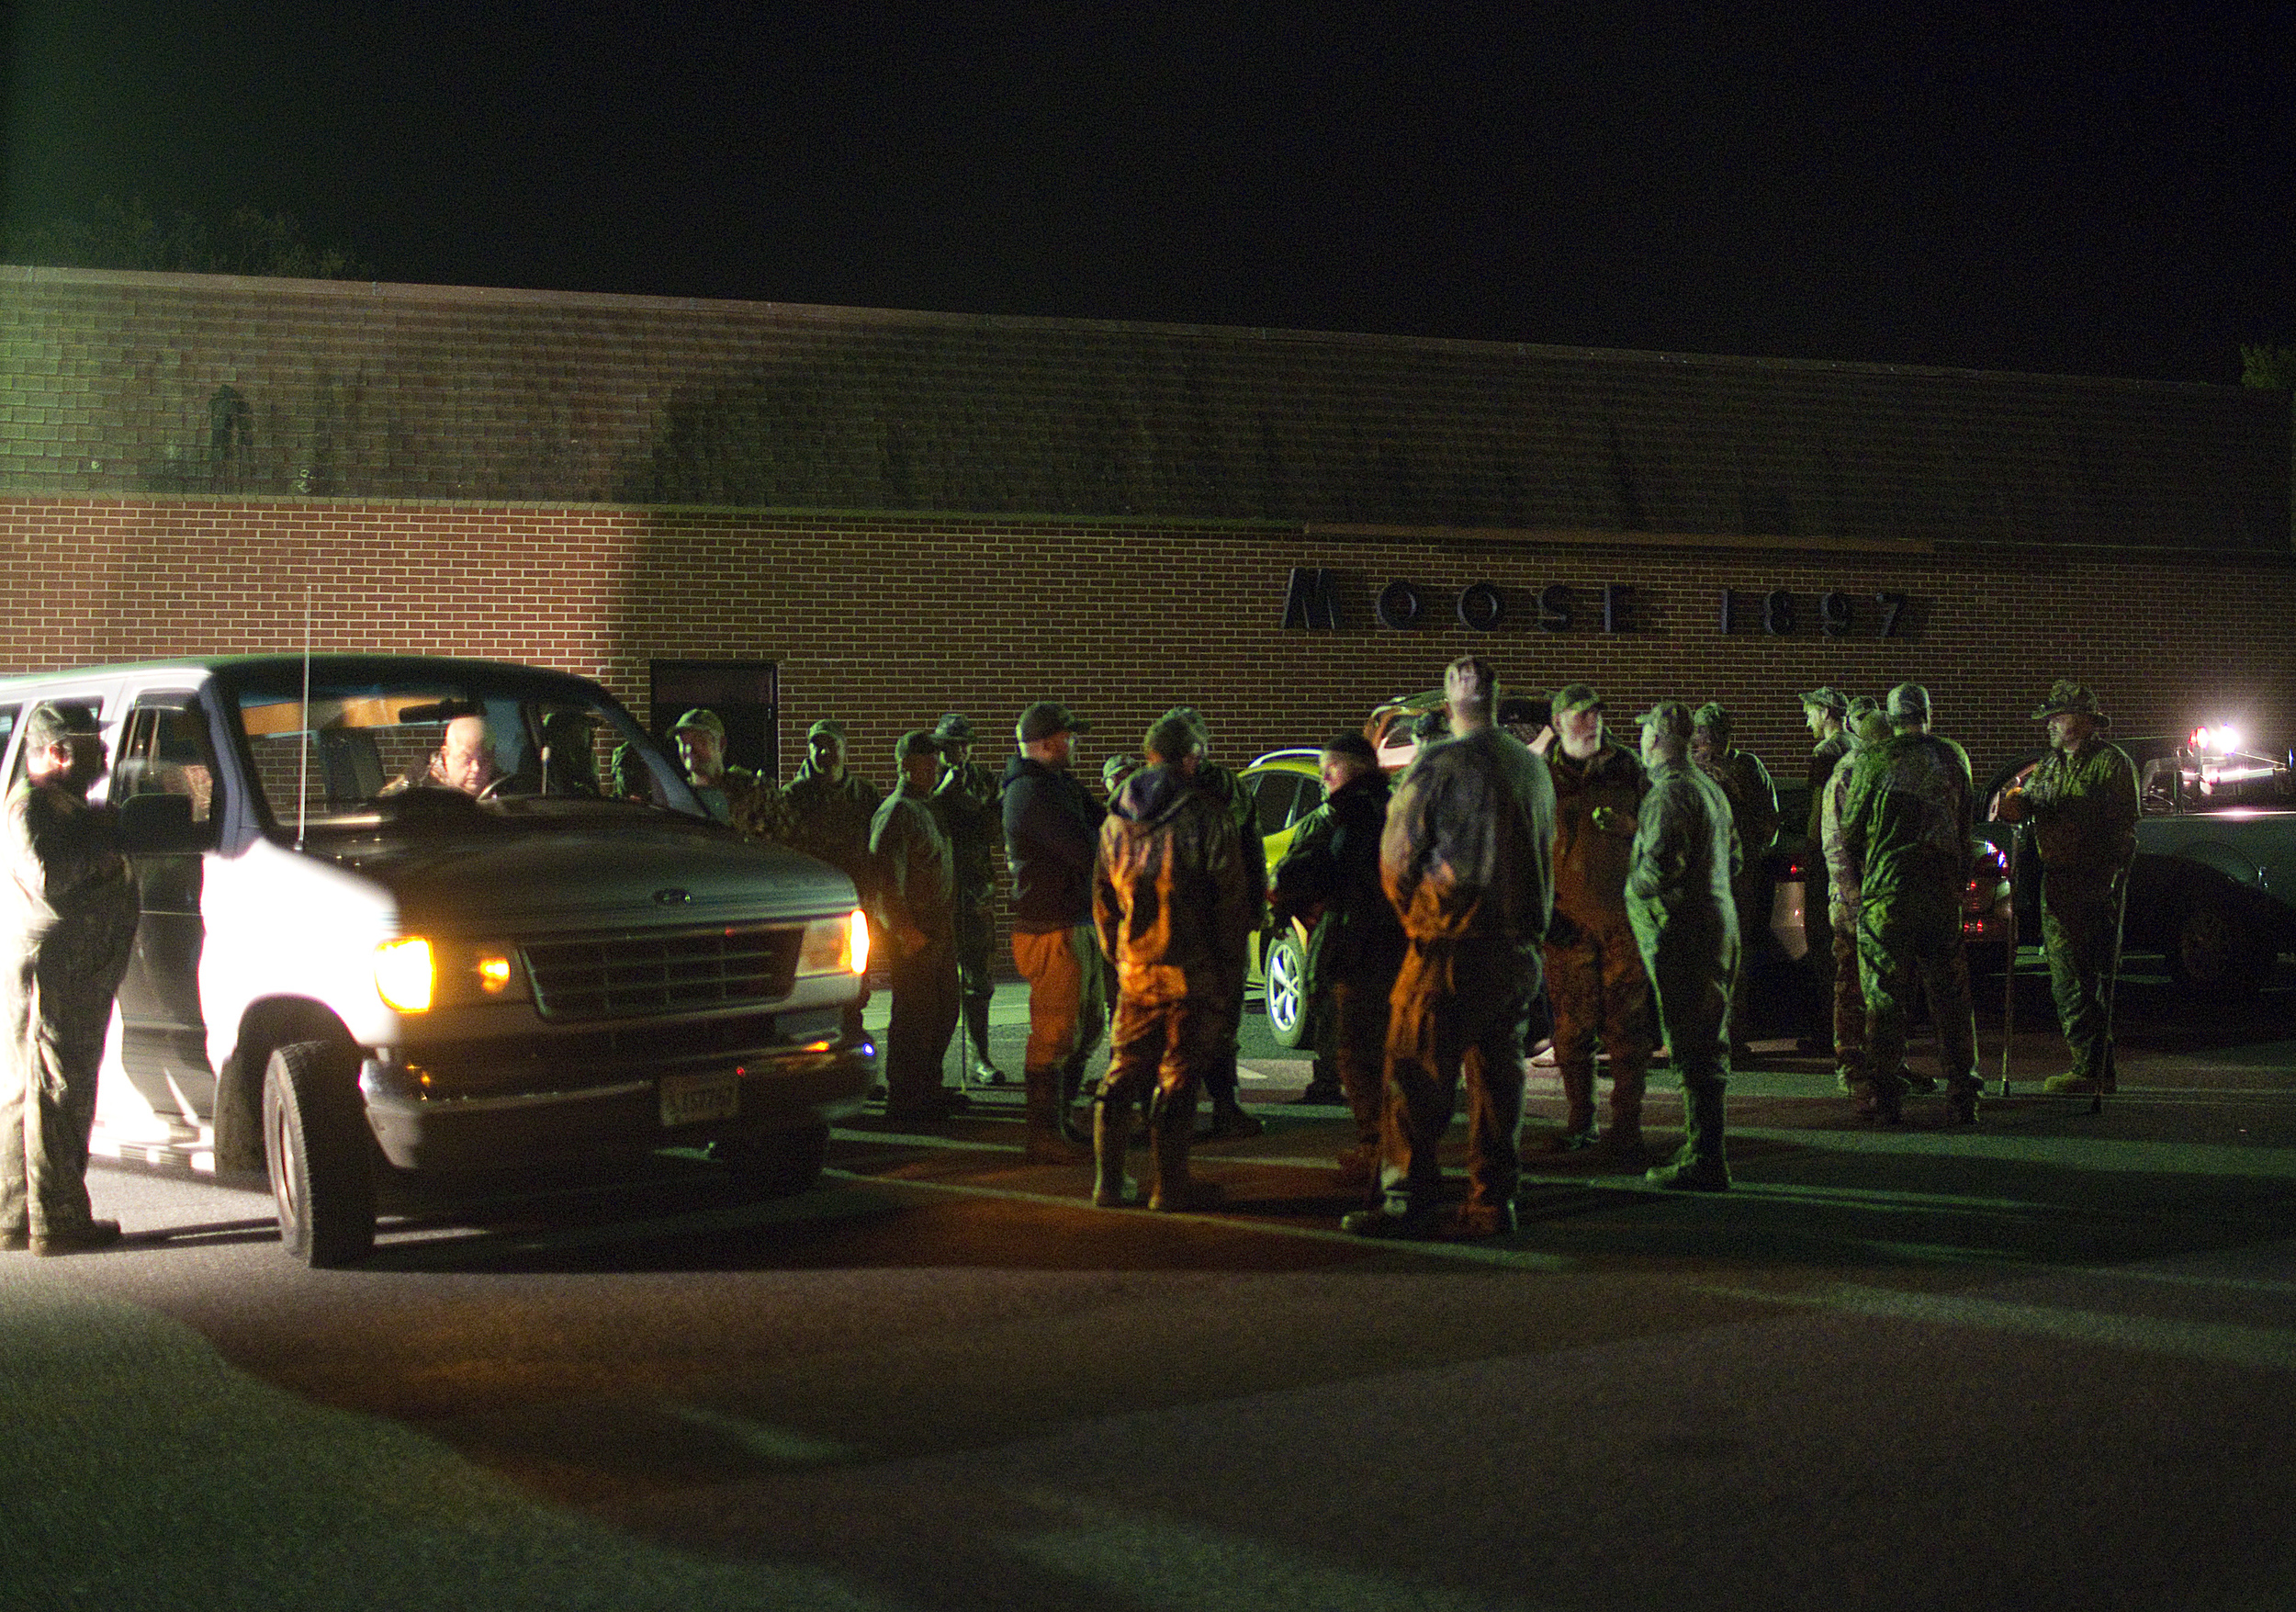 Turkey hunters gather outside of the Moose Lodge in Bedford between 4 and 4:30a.m. on Saturday, April 25, 2015. The 10th annual Gunnin' for Gobblers event, sponsored by the Bedford Outdoor Sportsman Association sent 44 hunters into the fields across Bedford County.